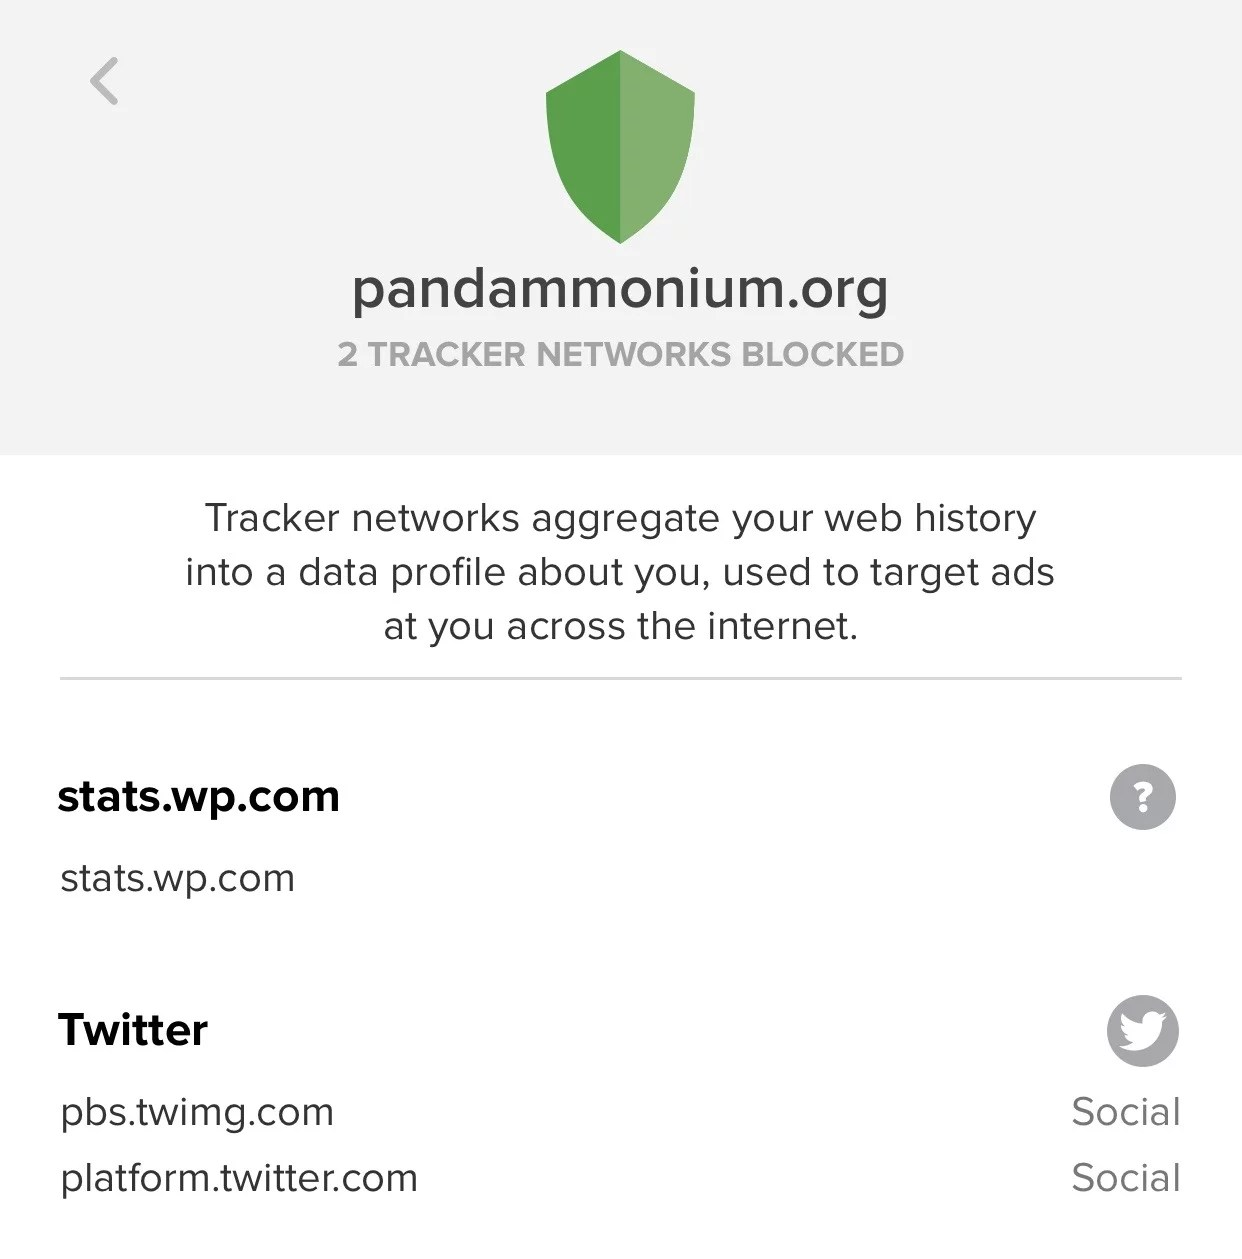 trackers on pandammonium.org